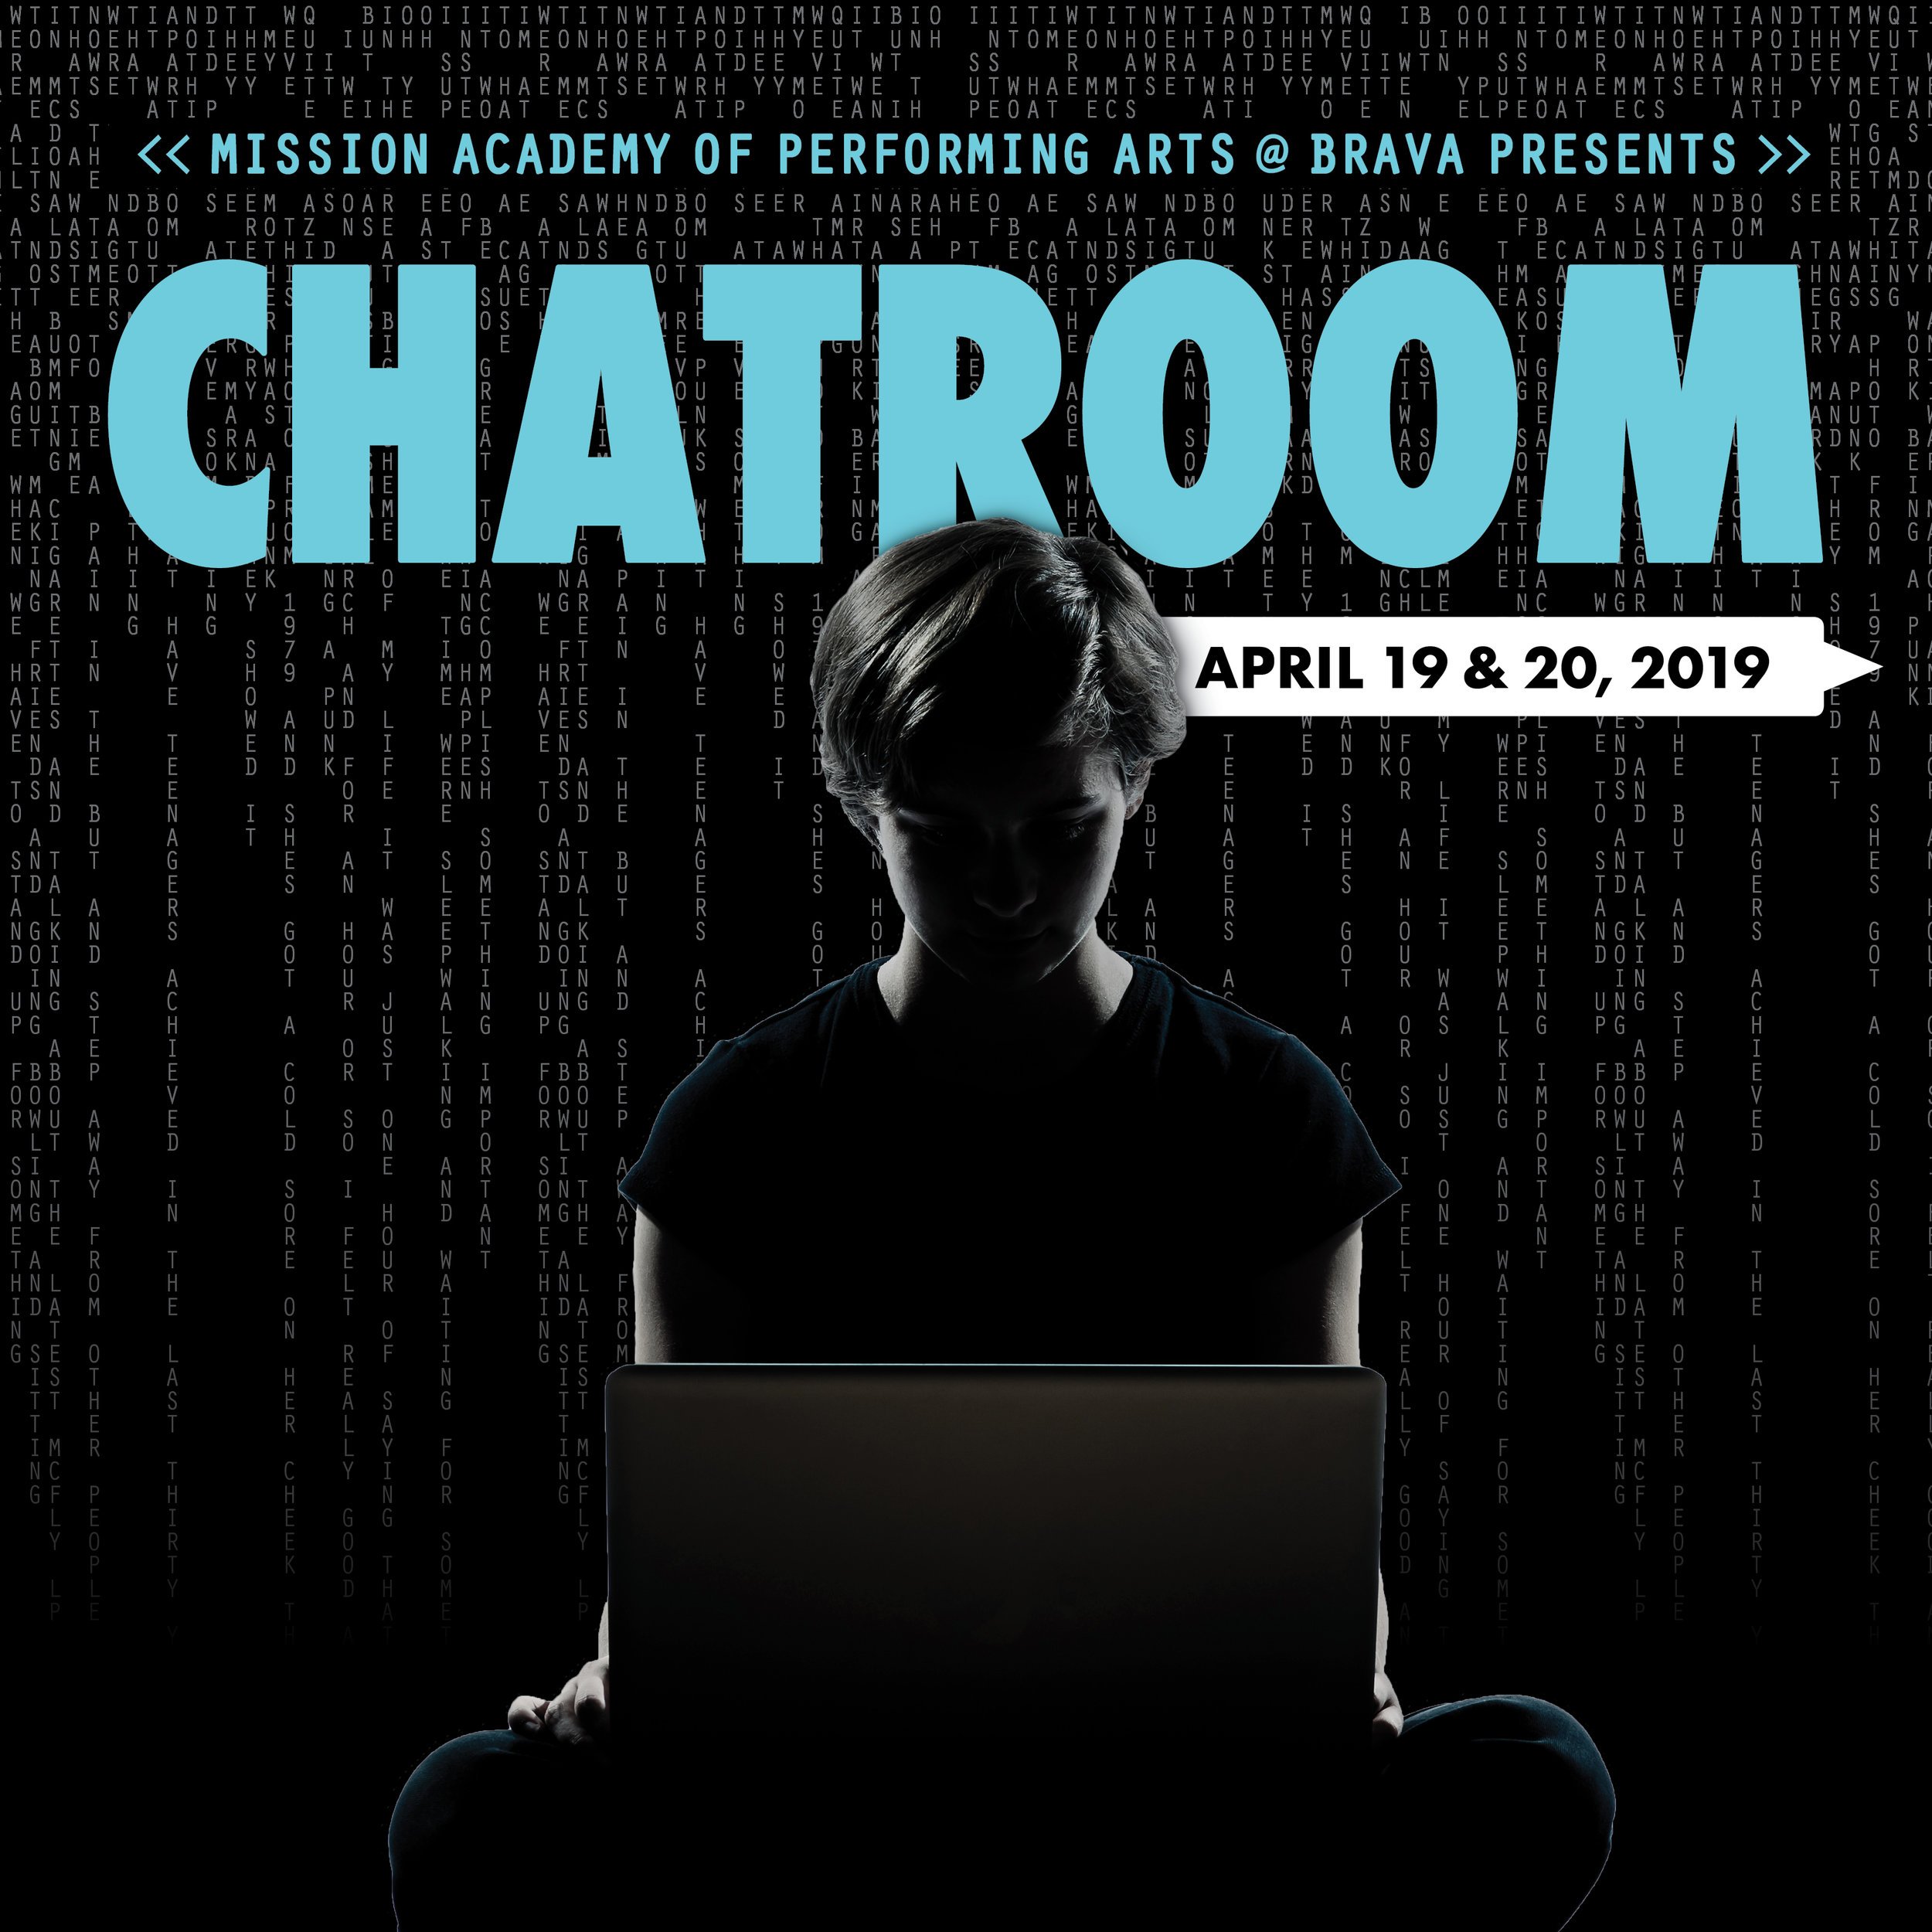 Brava, MAPA Chatroom, square 3-7-19.jpg